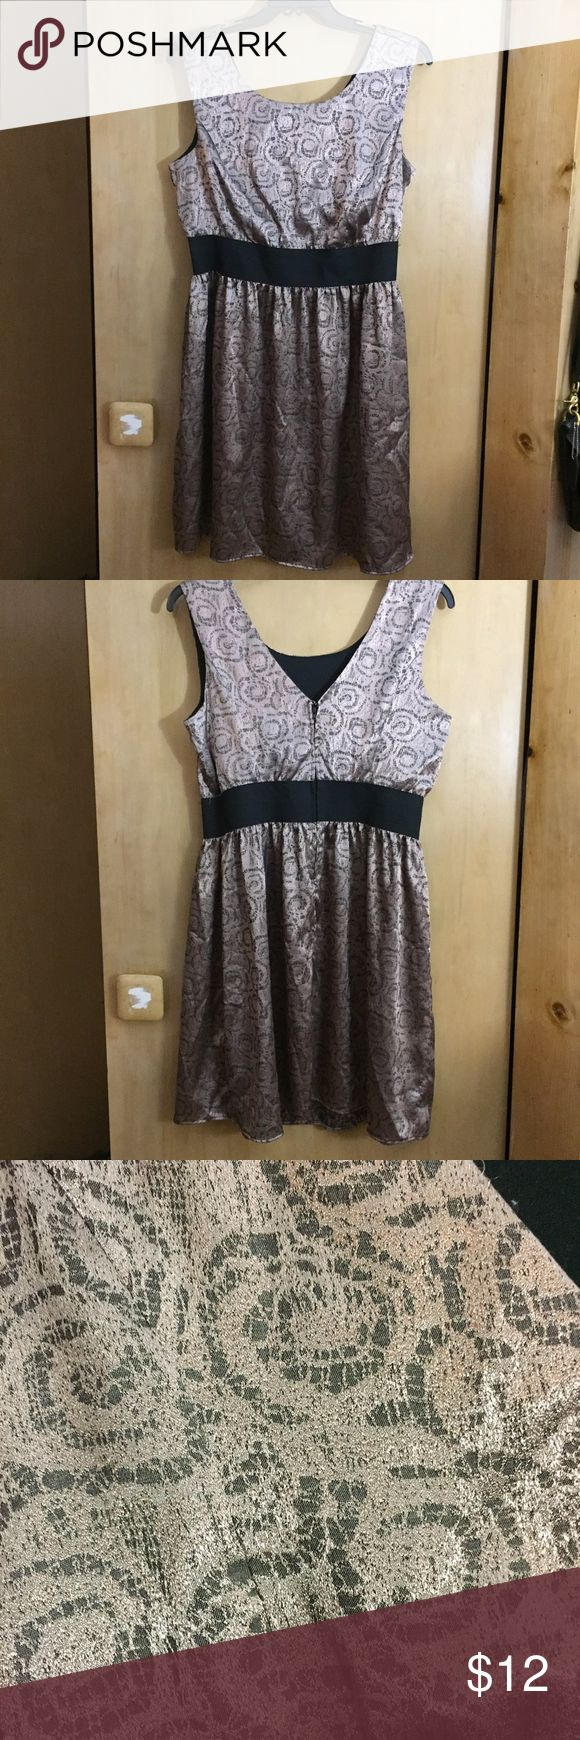 Metallic Party Dress A sleeveless metallic fit and flare dress with v-cut in back Forever 21 Dresses Mini